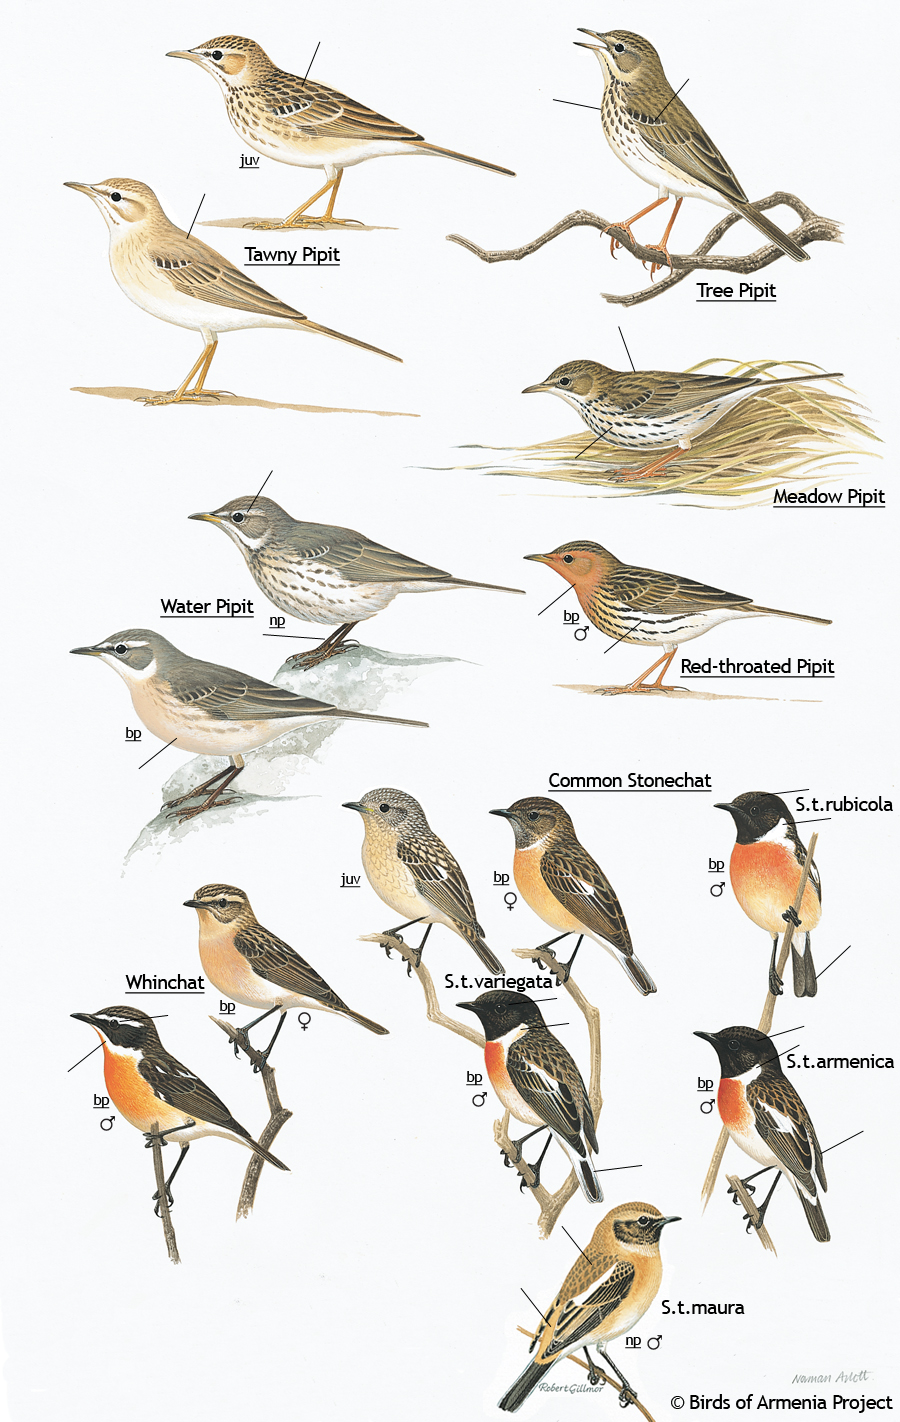 Pipits, stonechats and whinchats